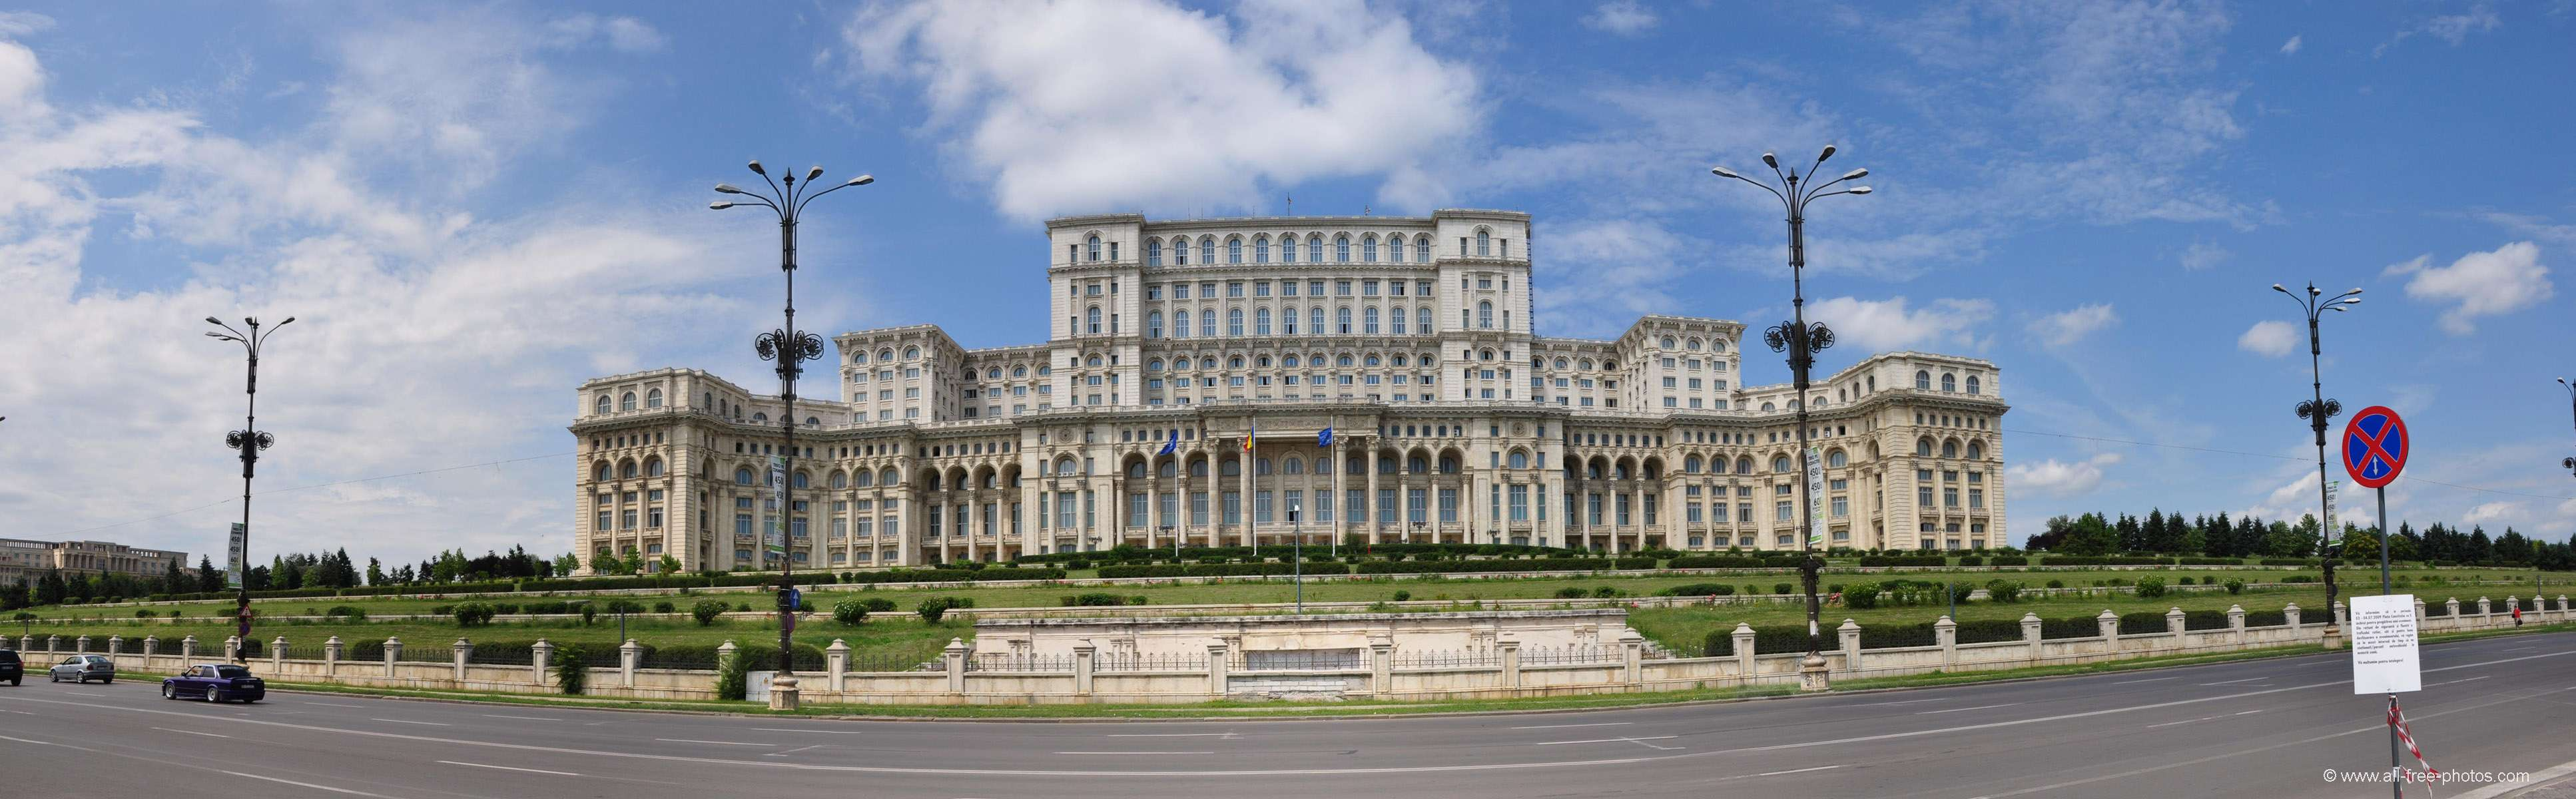 Palace of the Parliament  - Bucharest - Rumania